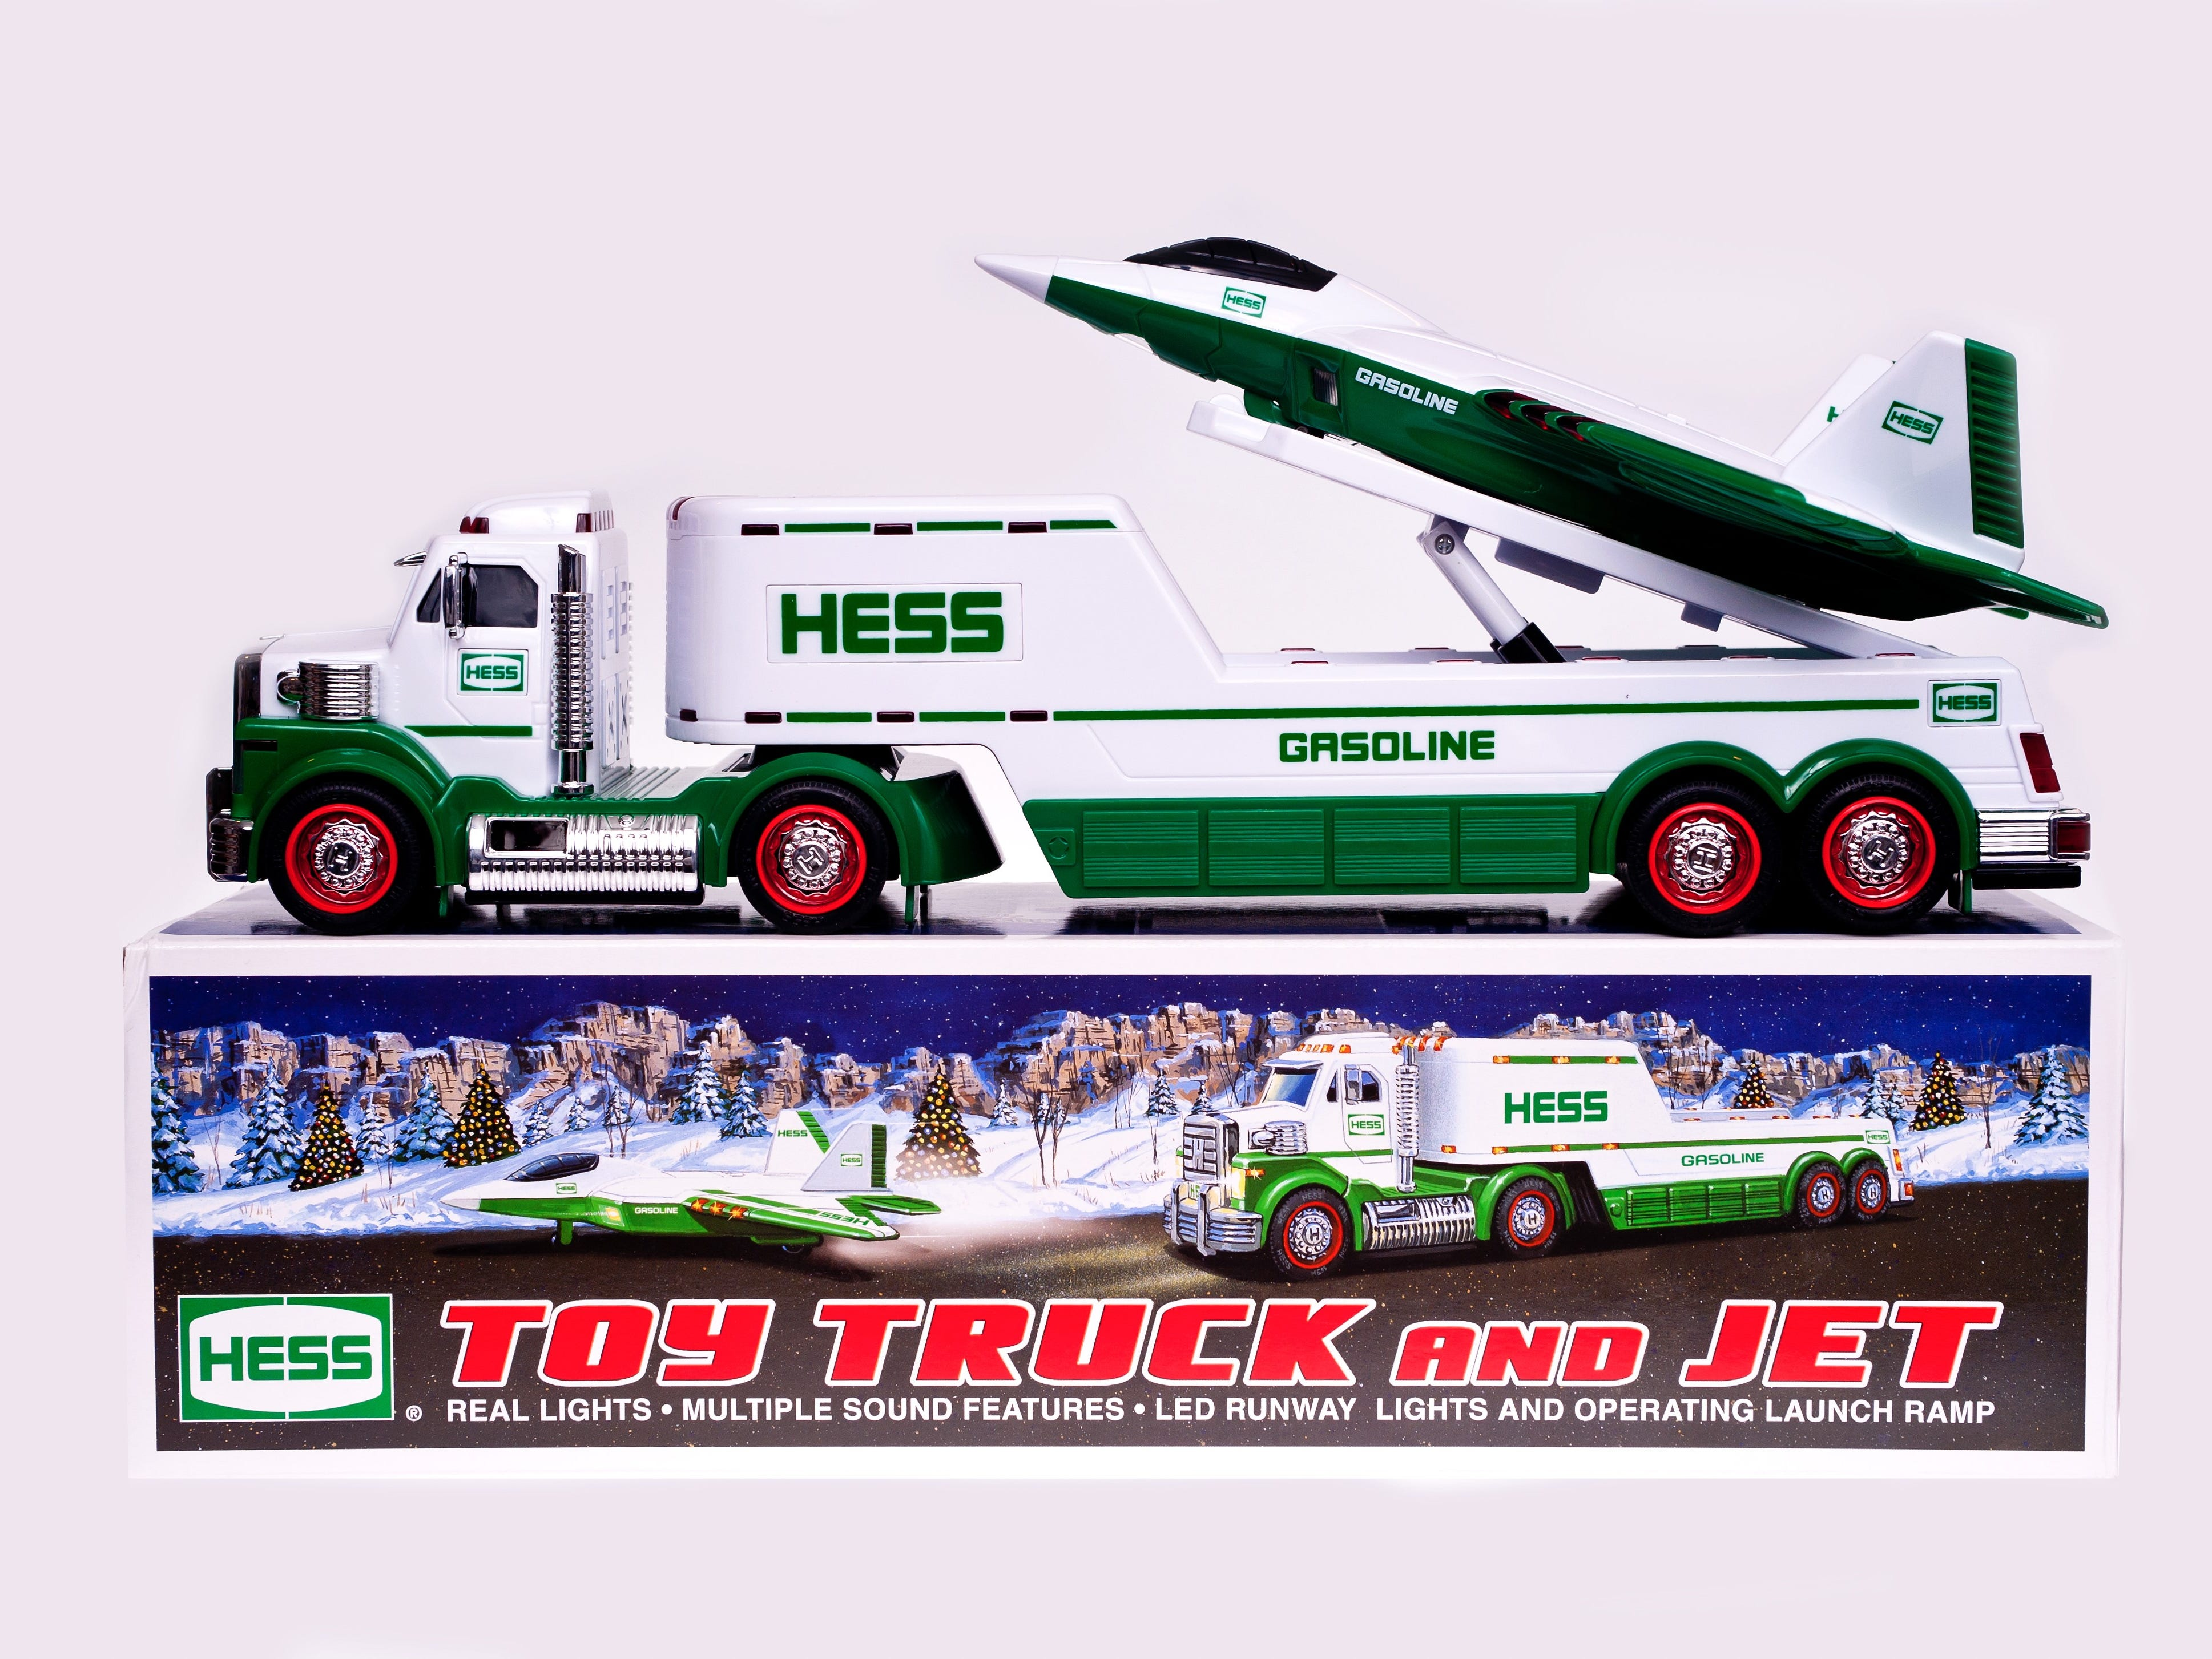 The 2010 Hess toy truck.